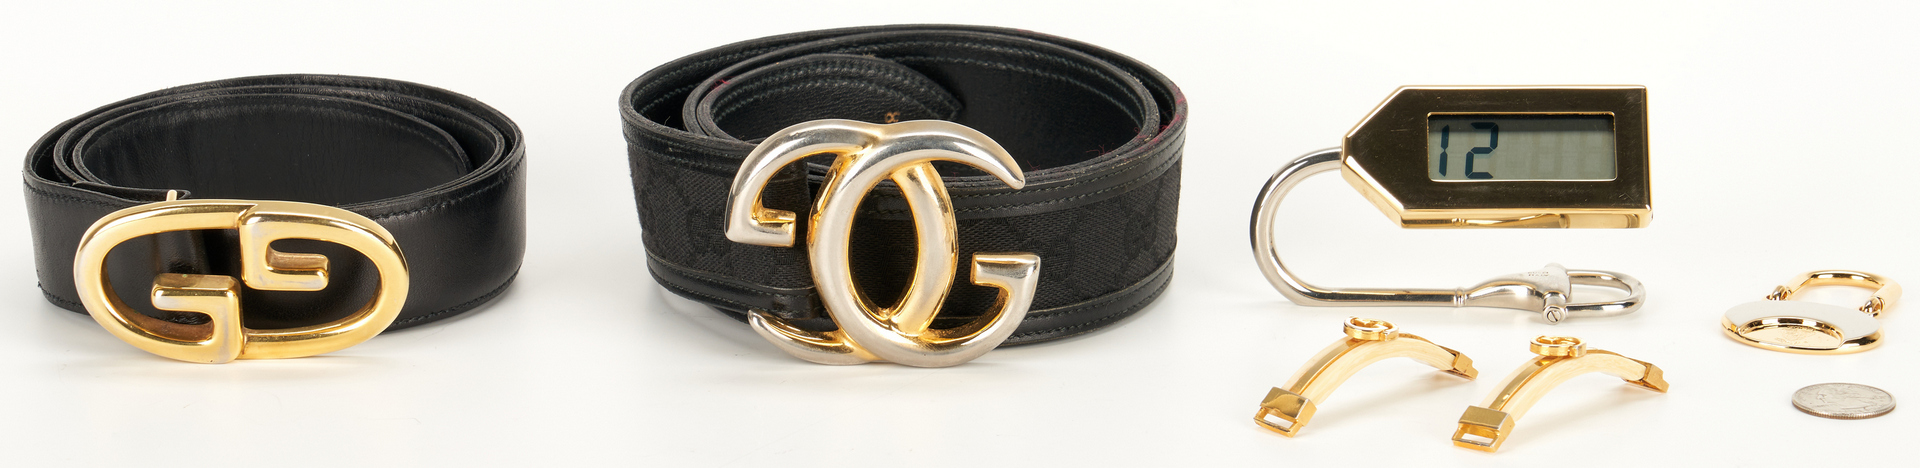 Lot 1028: 8 Gucci items, incl. belts, promotional items